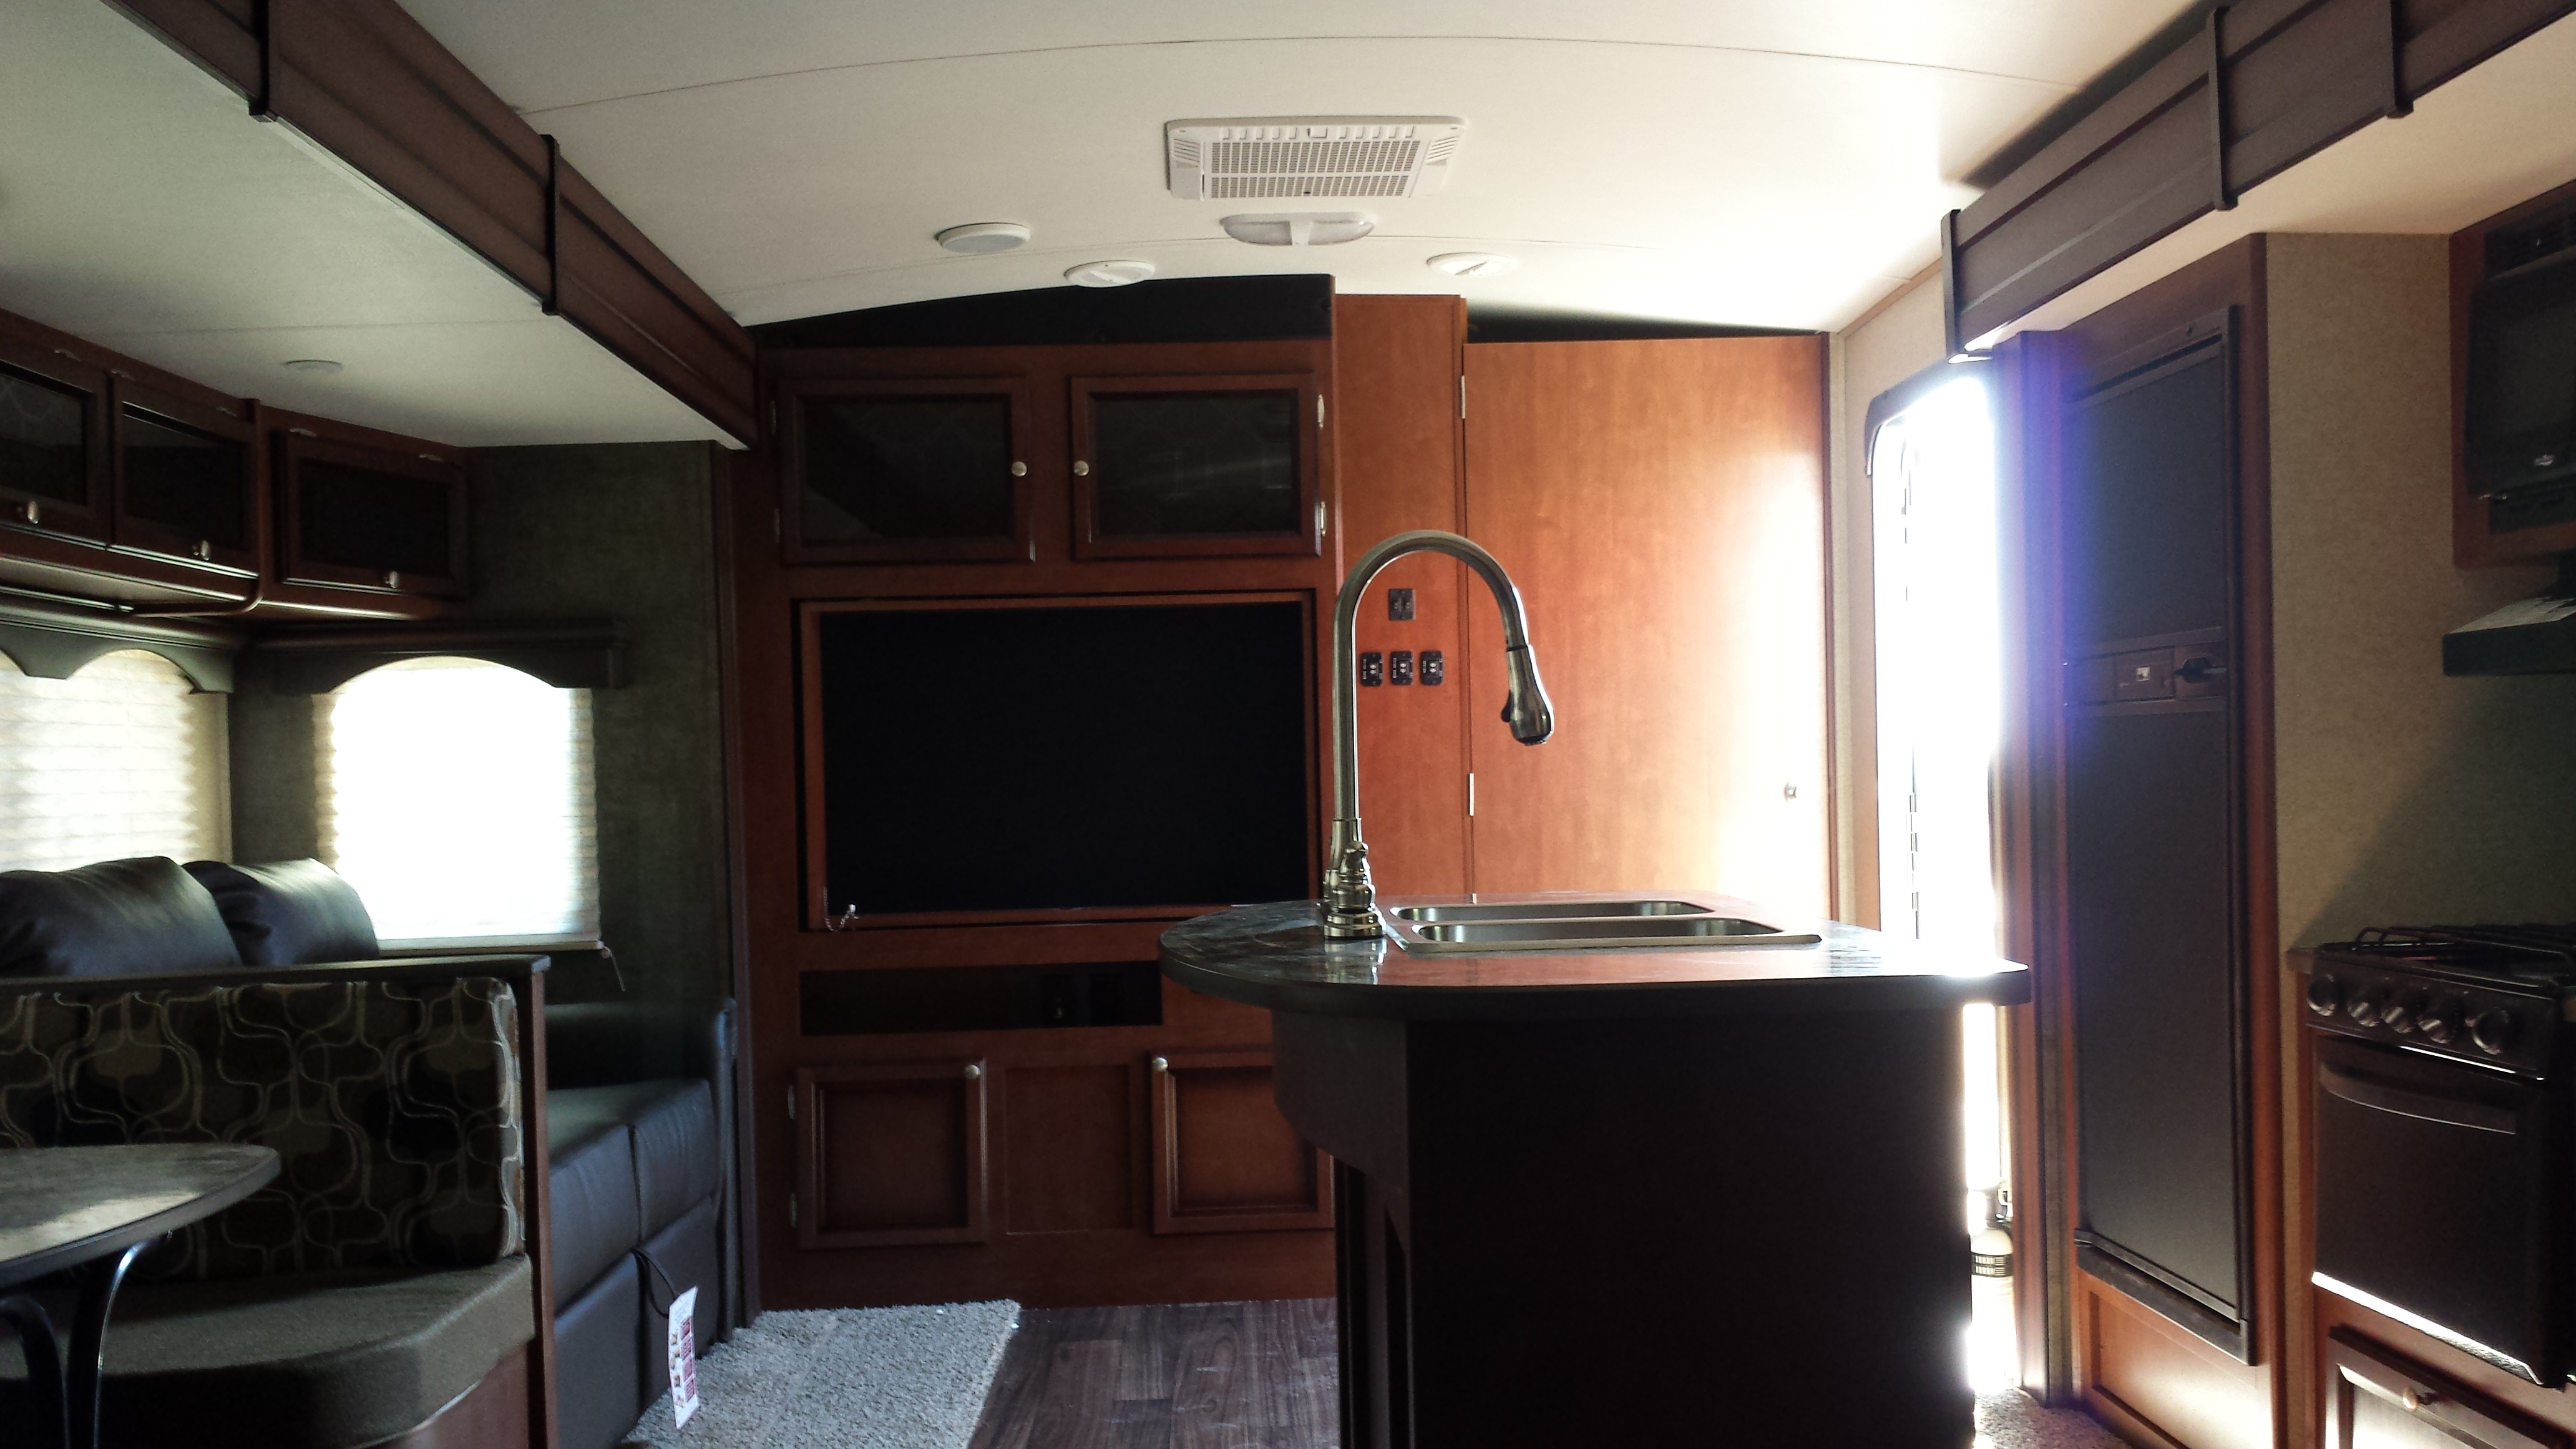 Cheap Travel Trailers For Sale >> WHOLESALE PRICE: 2014 Heartland Wilderness 2875bh travel trailer - $20500 - RV Renters World